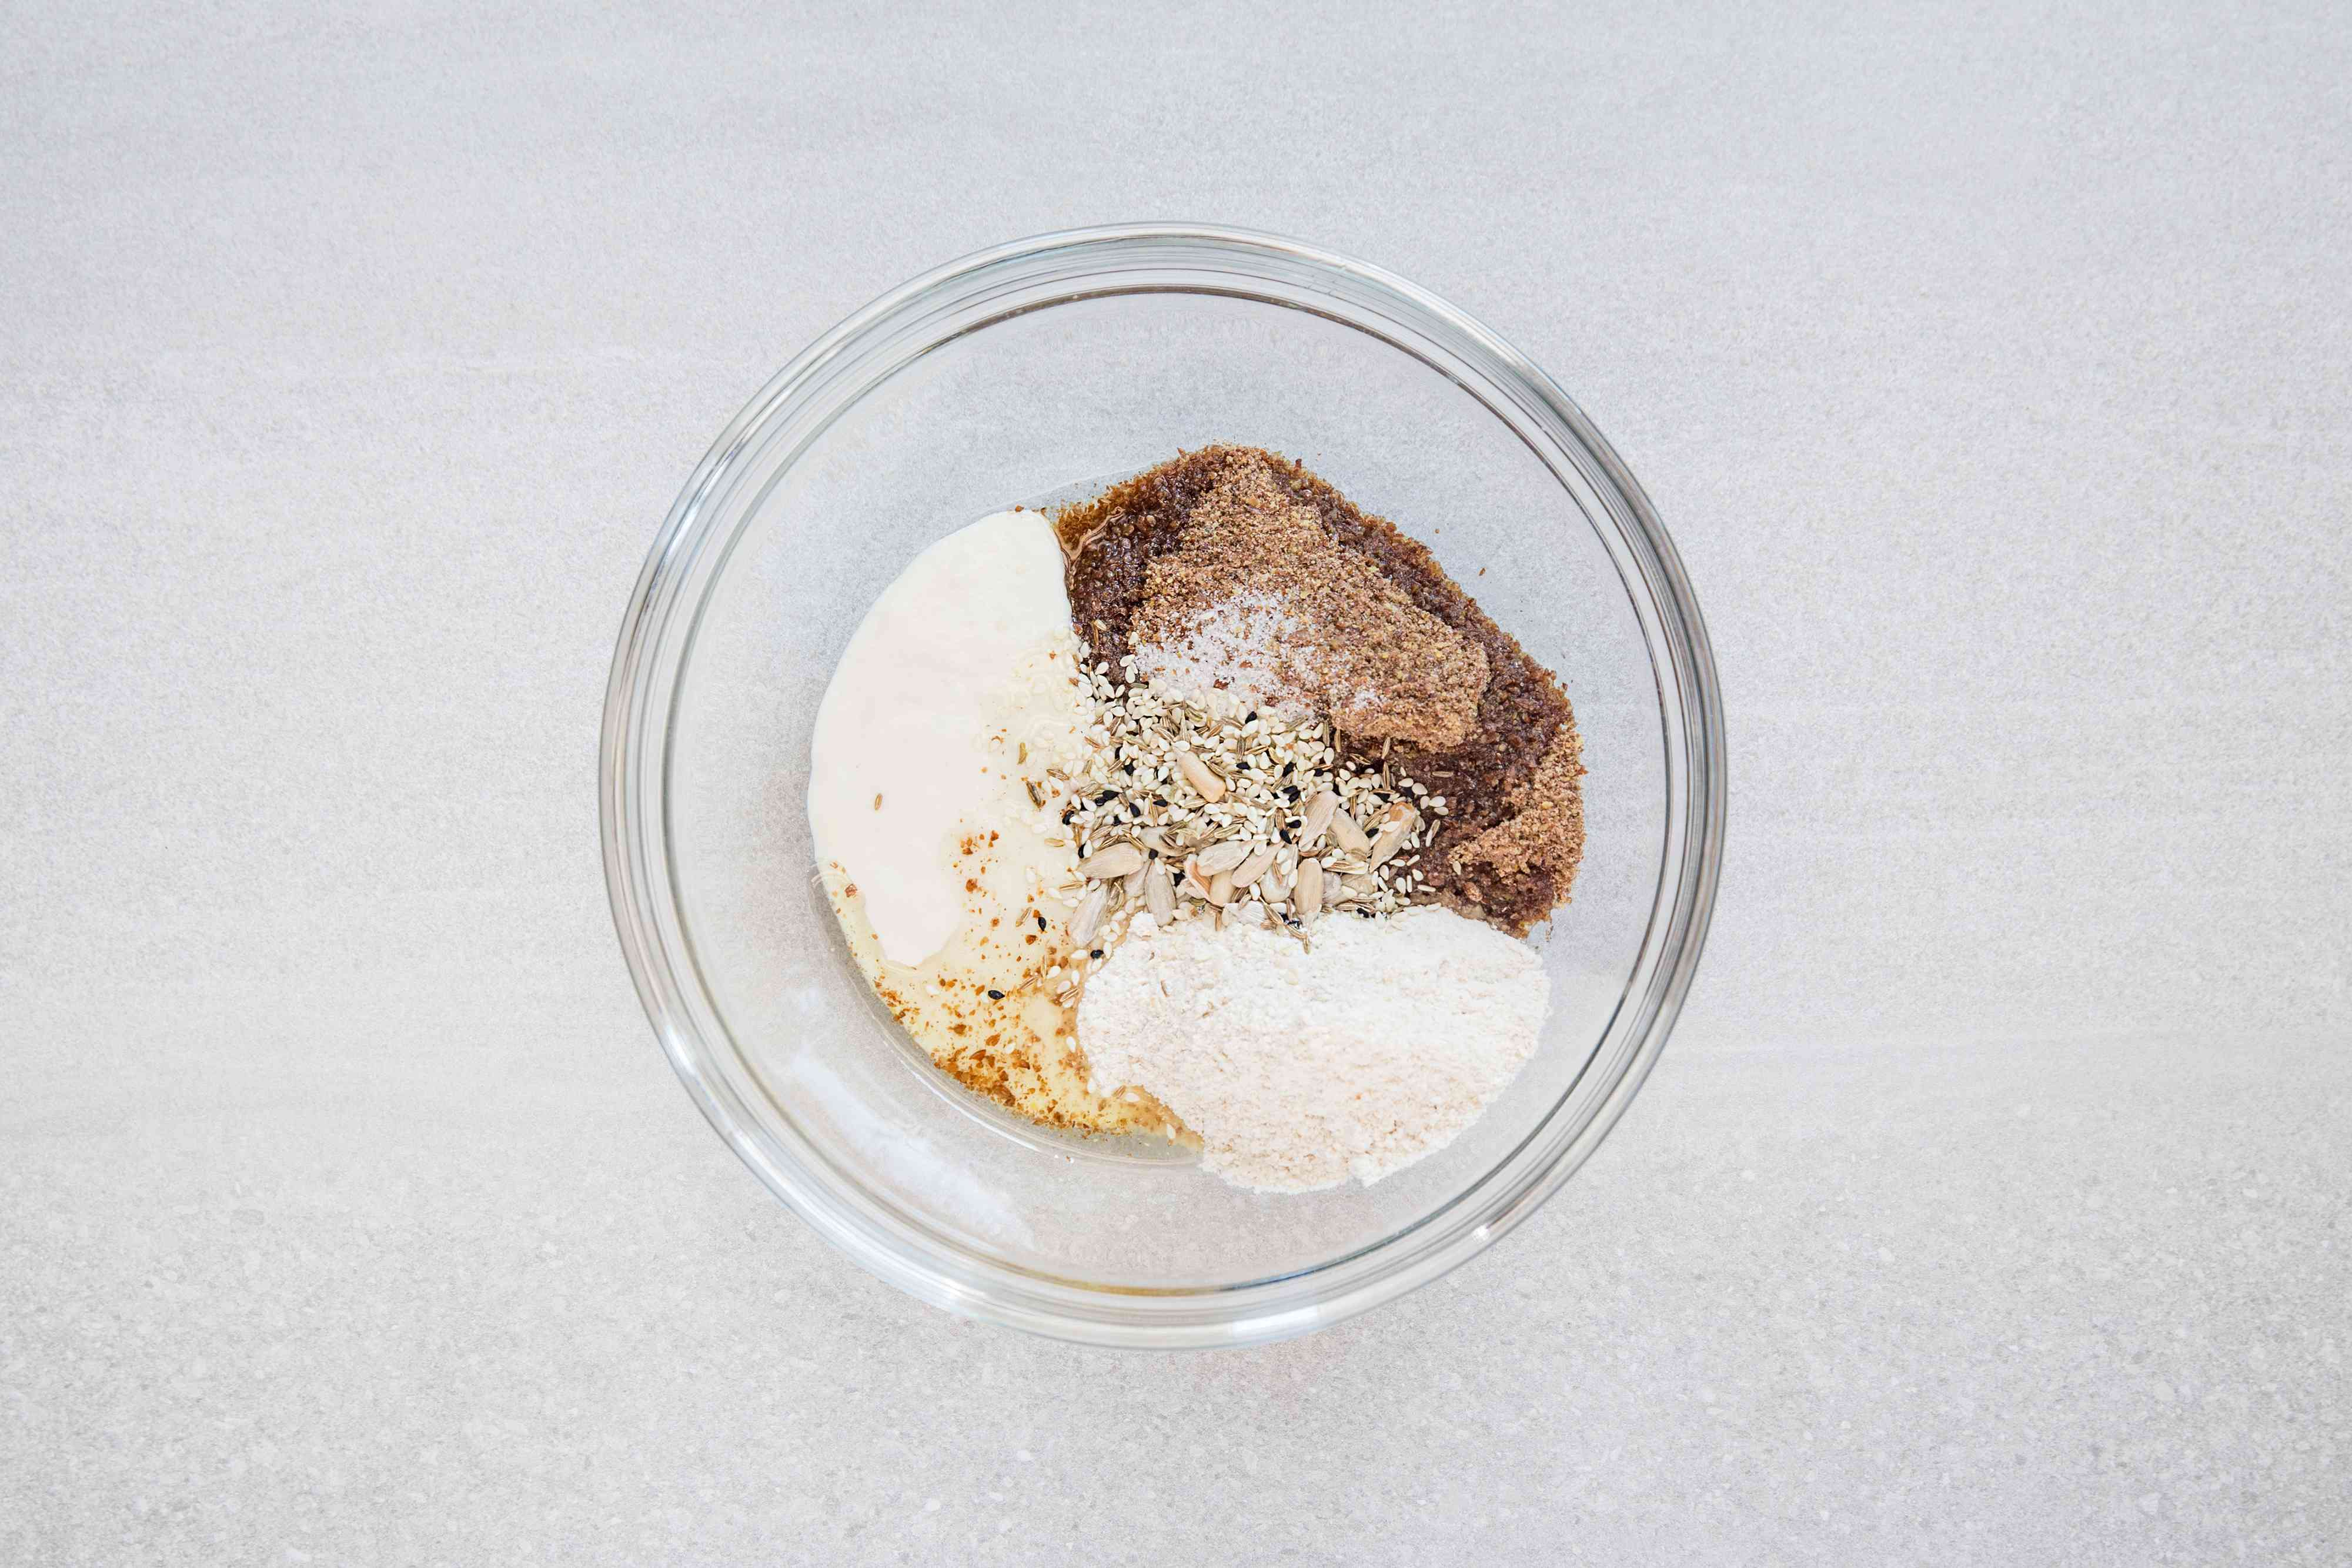 Starter, flour, flaxseed meal, oil, salt, and seeds in a bowl